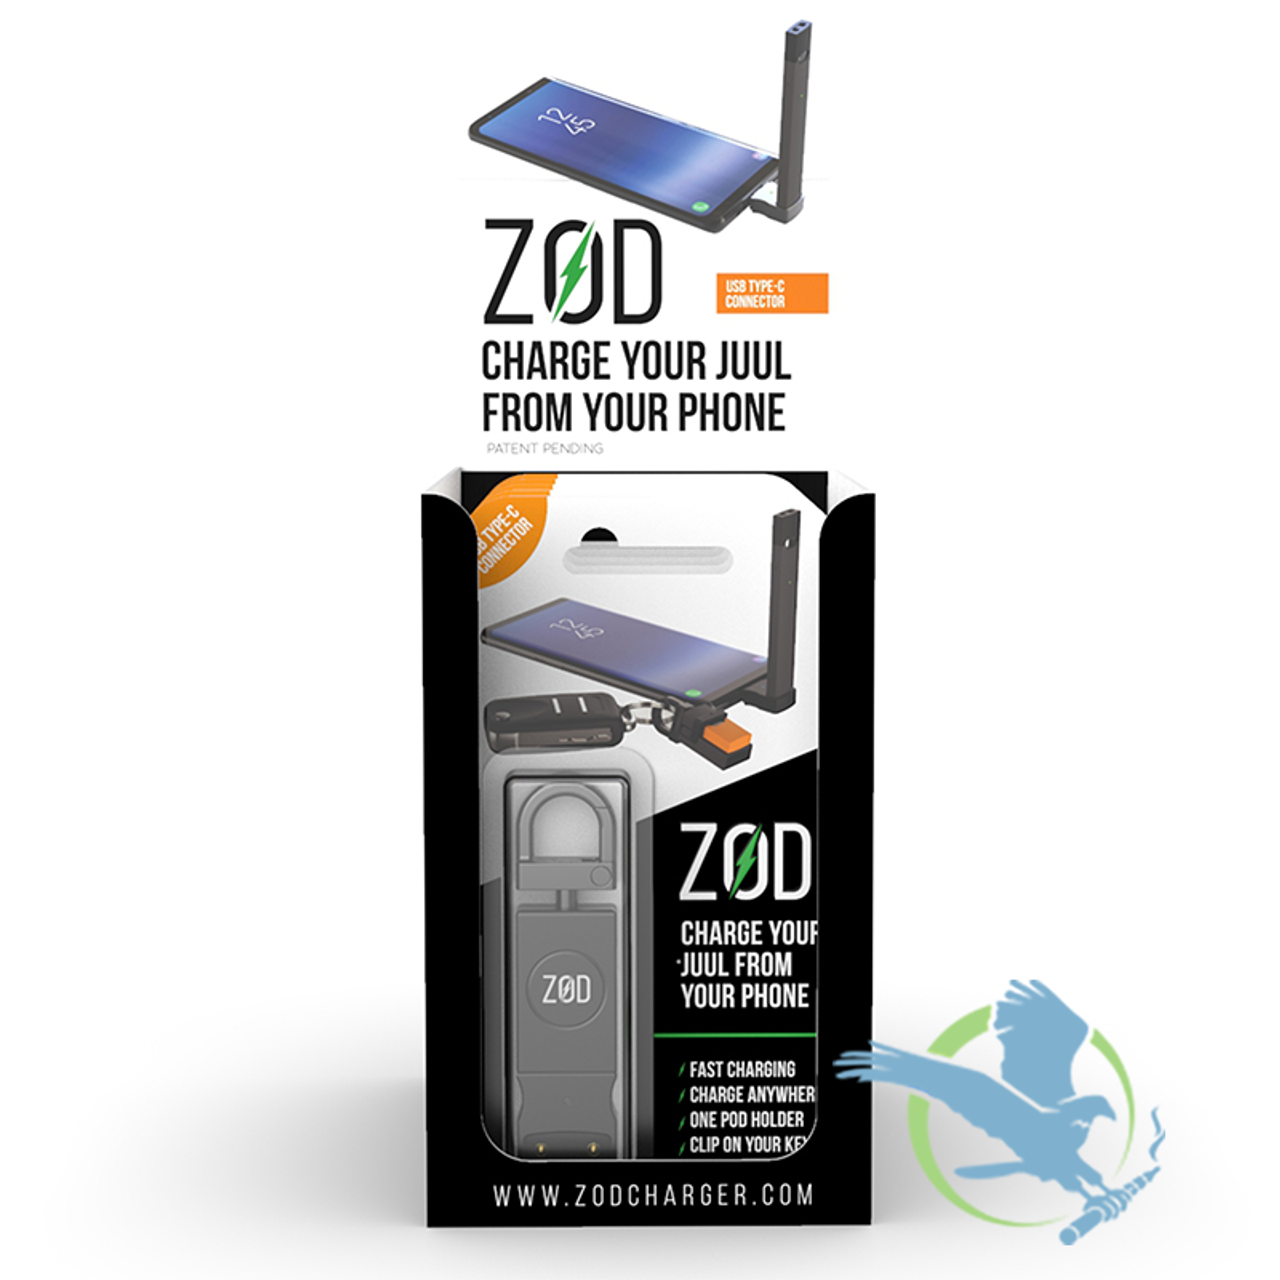 ZOD JUUL Compatible Charger | Hardware | Midwest Distribution